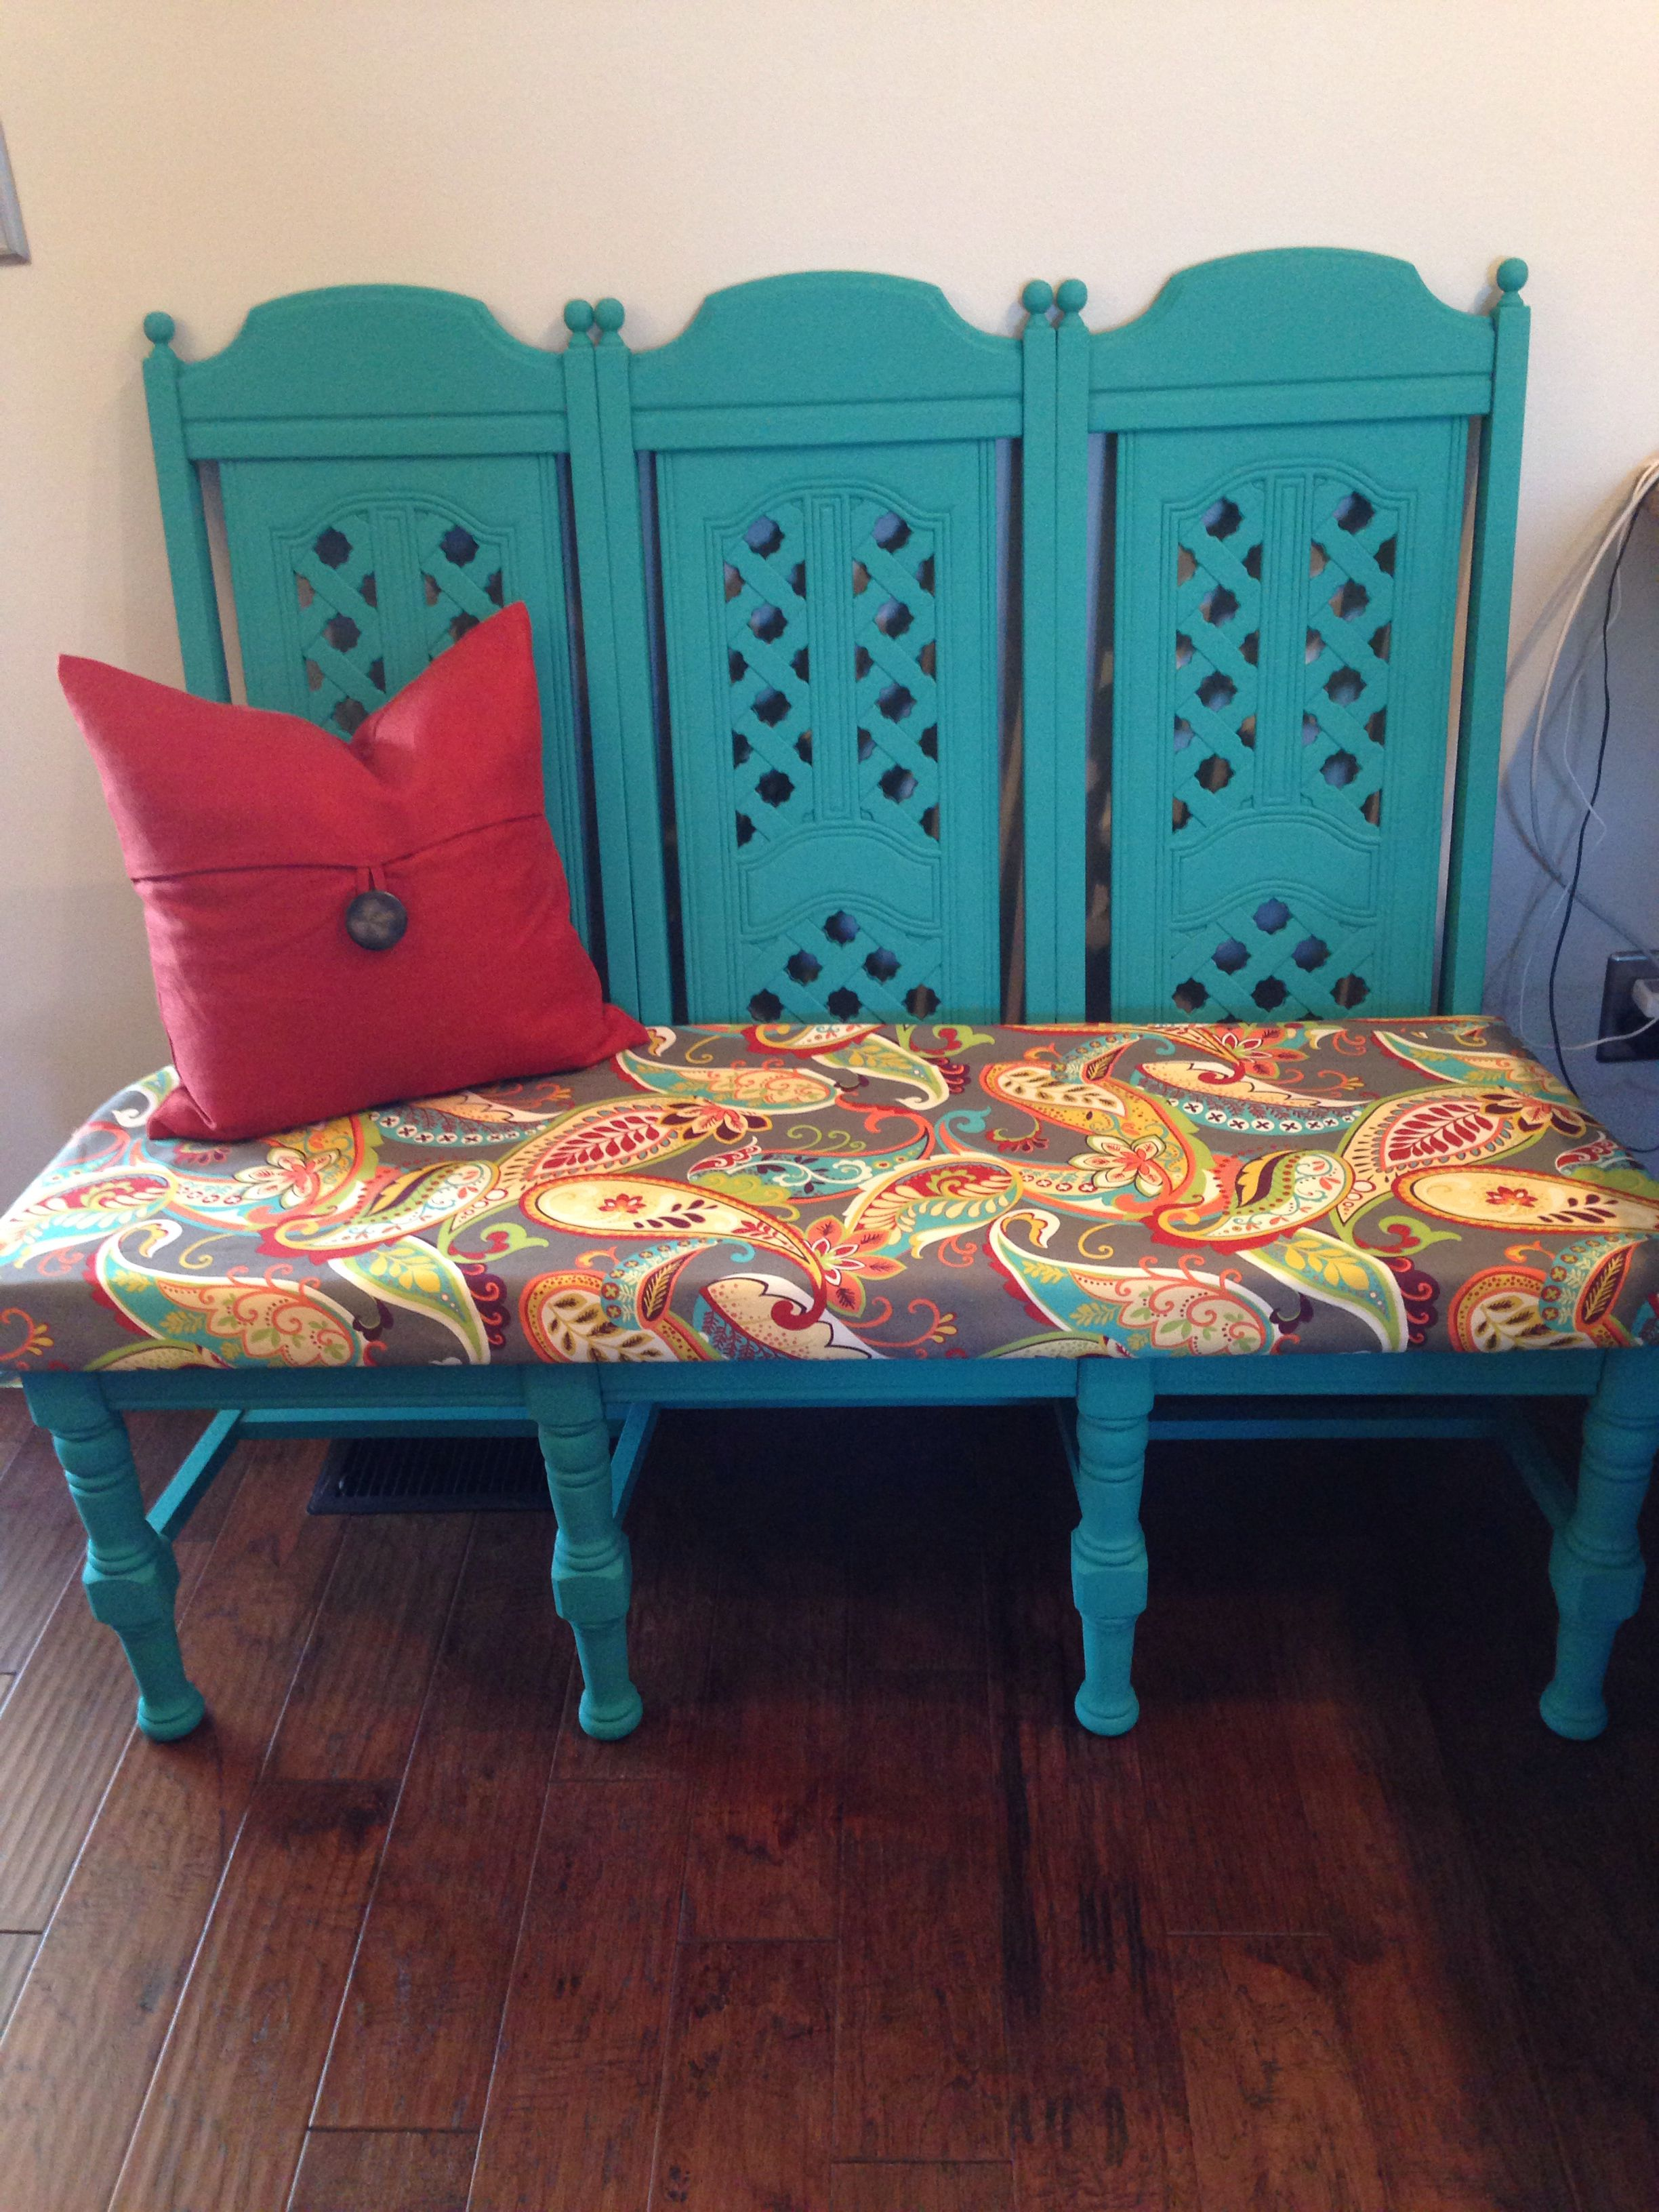 Fabulous My Husband And I Repurposed Dining Room Chairs I Painted Unemploymentrelief Wooden Chair Designs For Living Room Unemploymentrelieforg